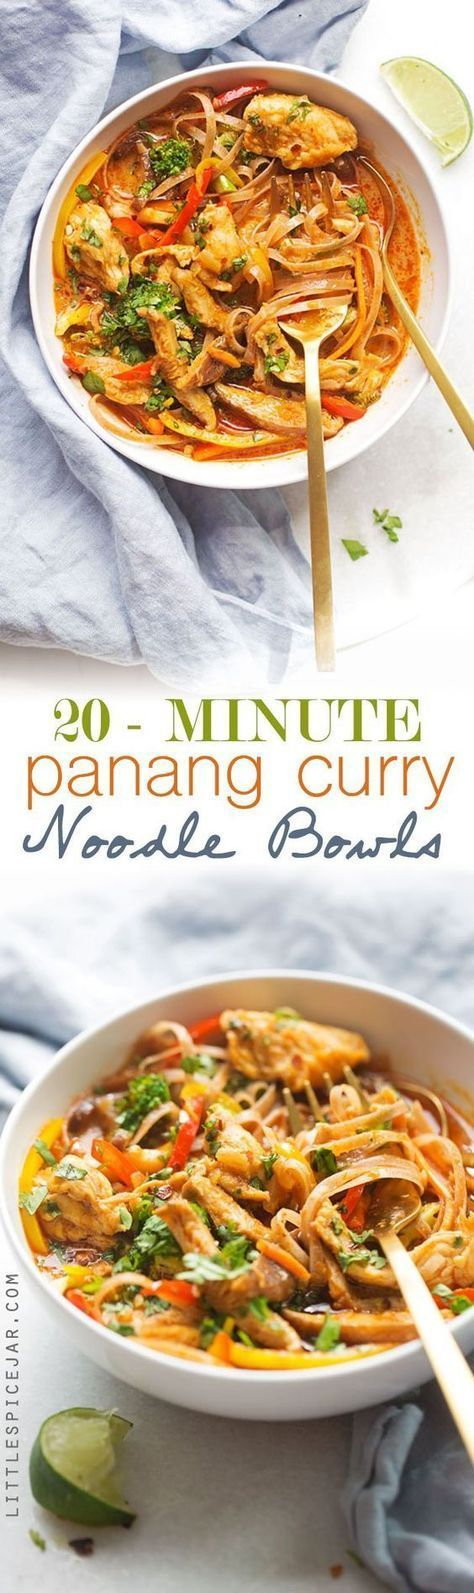 20 Minute Panang Curry Noodle Bowls - A quick, easy, and healthyish recipe for curry noodles topped with your favorite veggies. Comfort in a bowl!